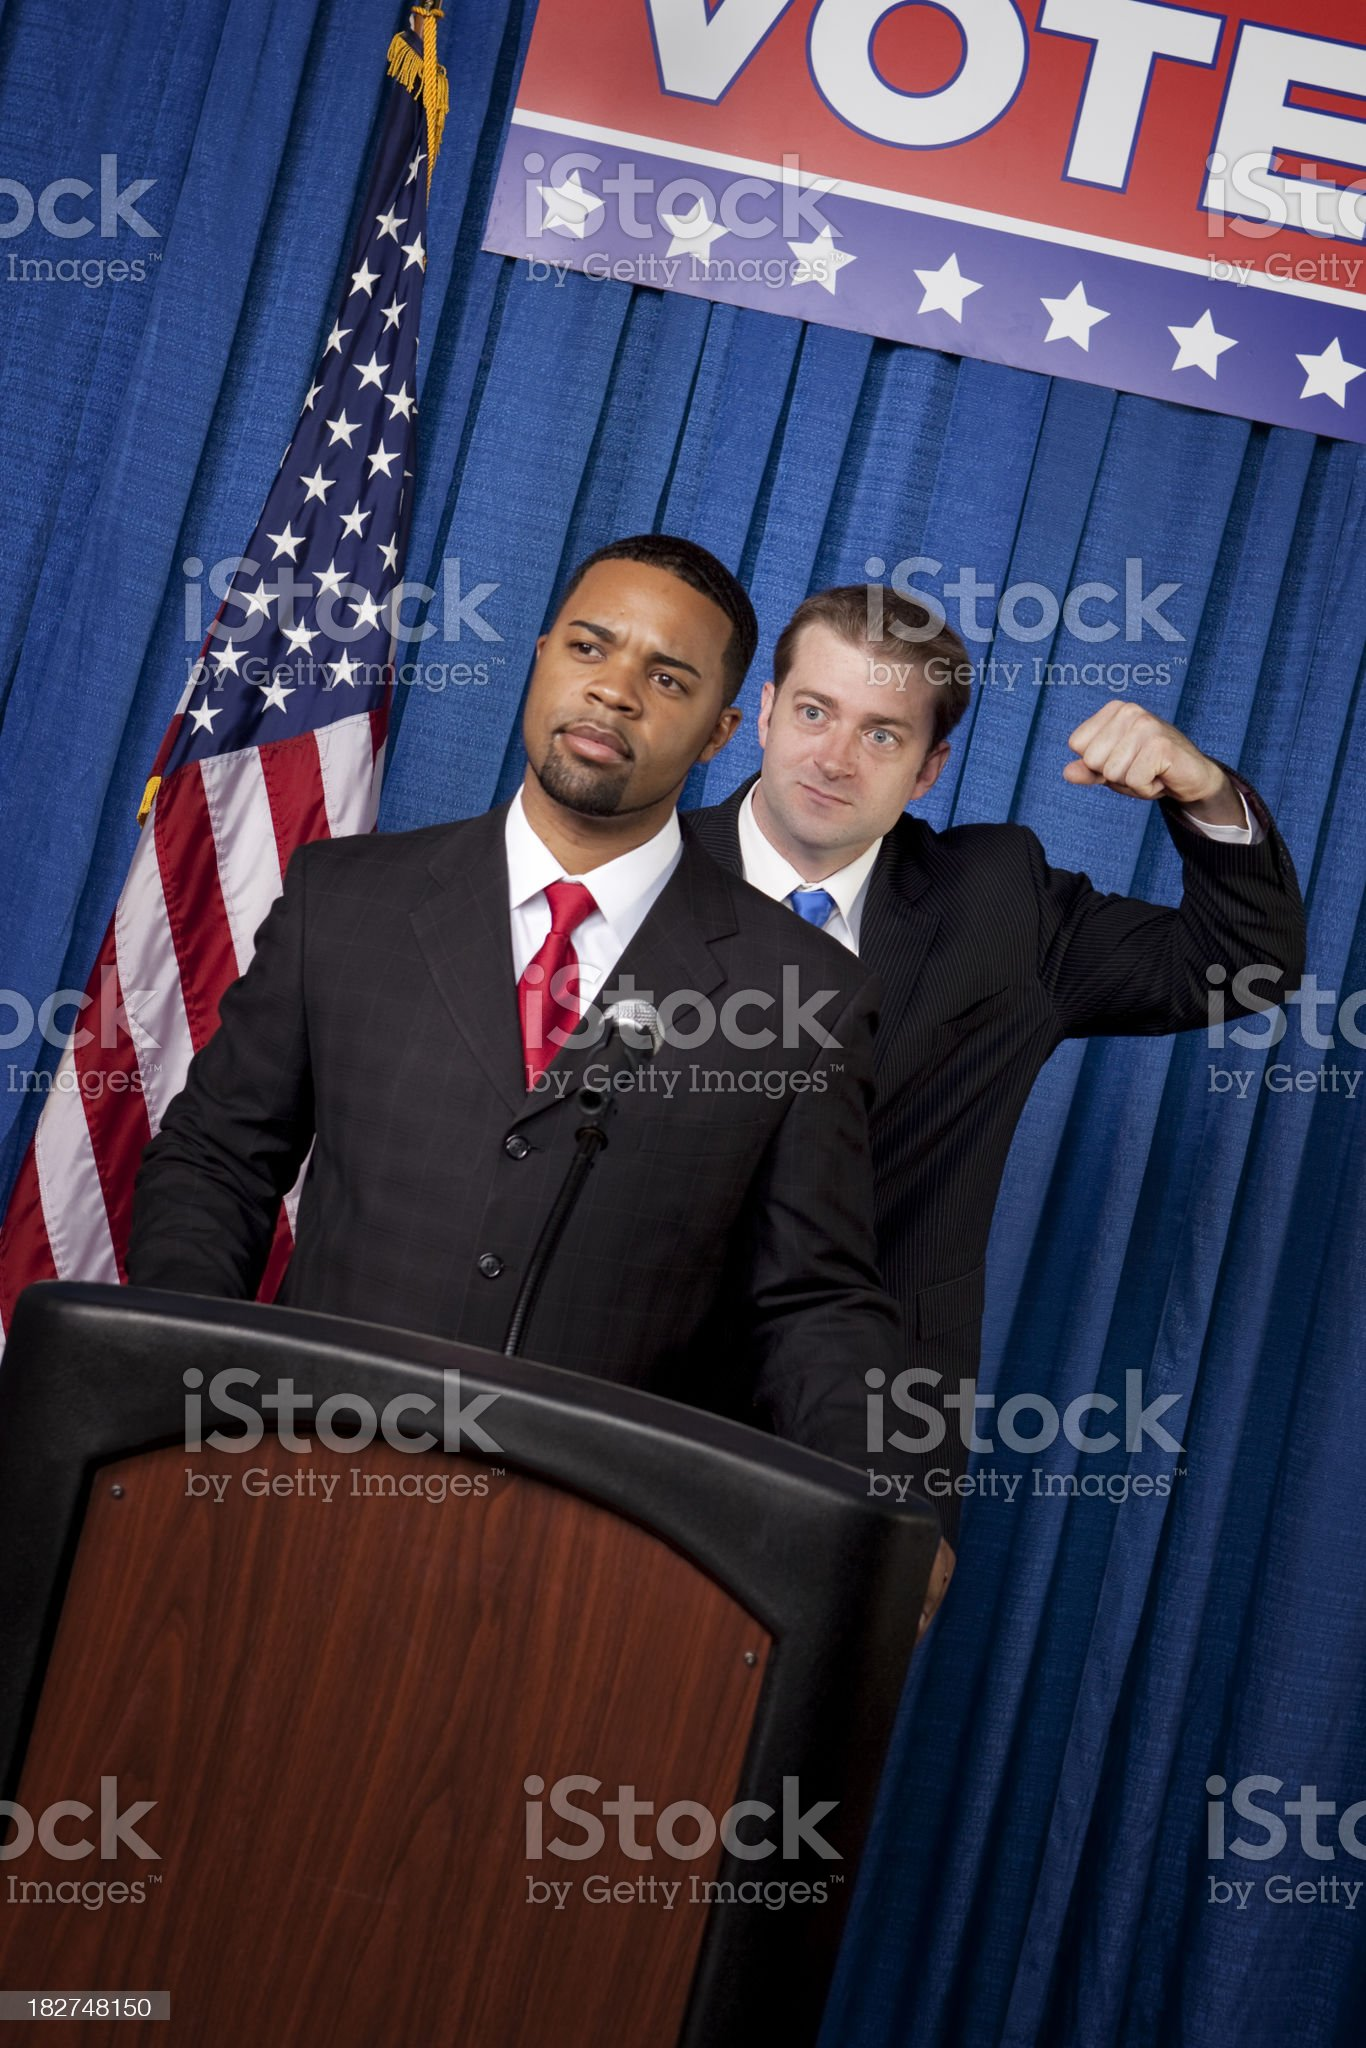 Political Sucker Punch royalty-free stock photo